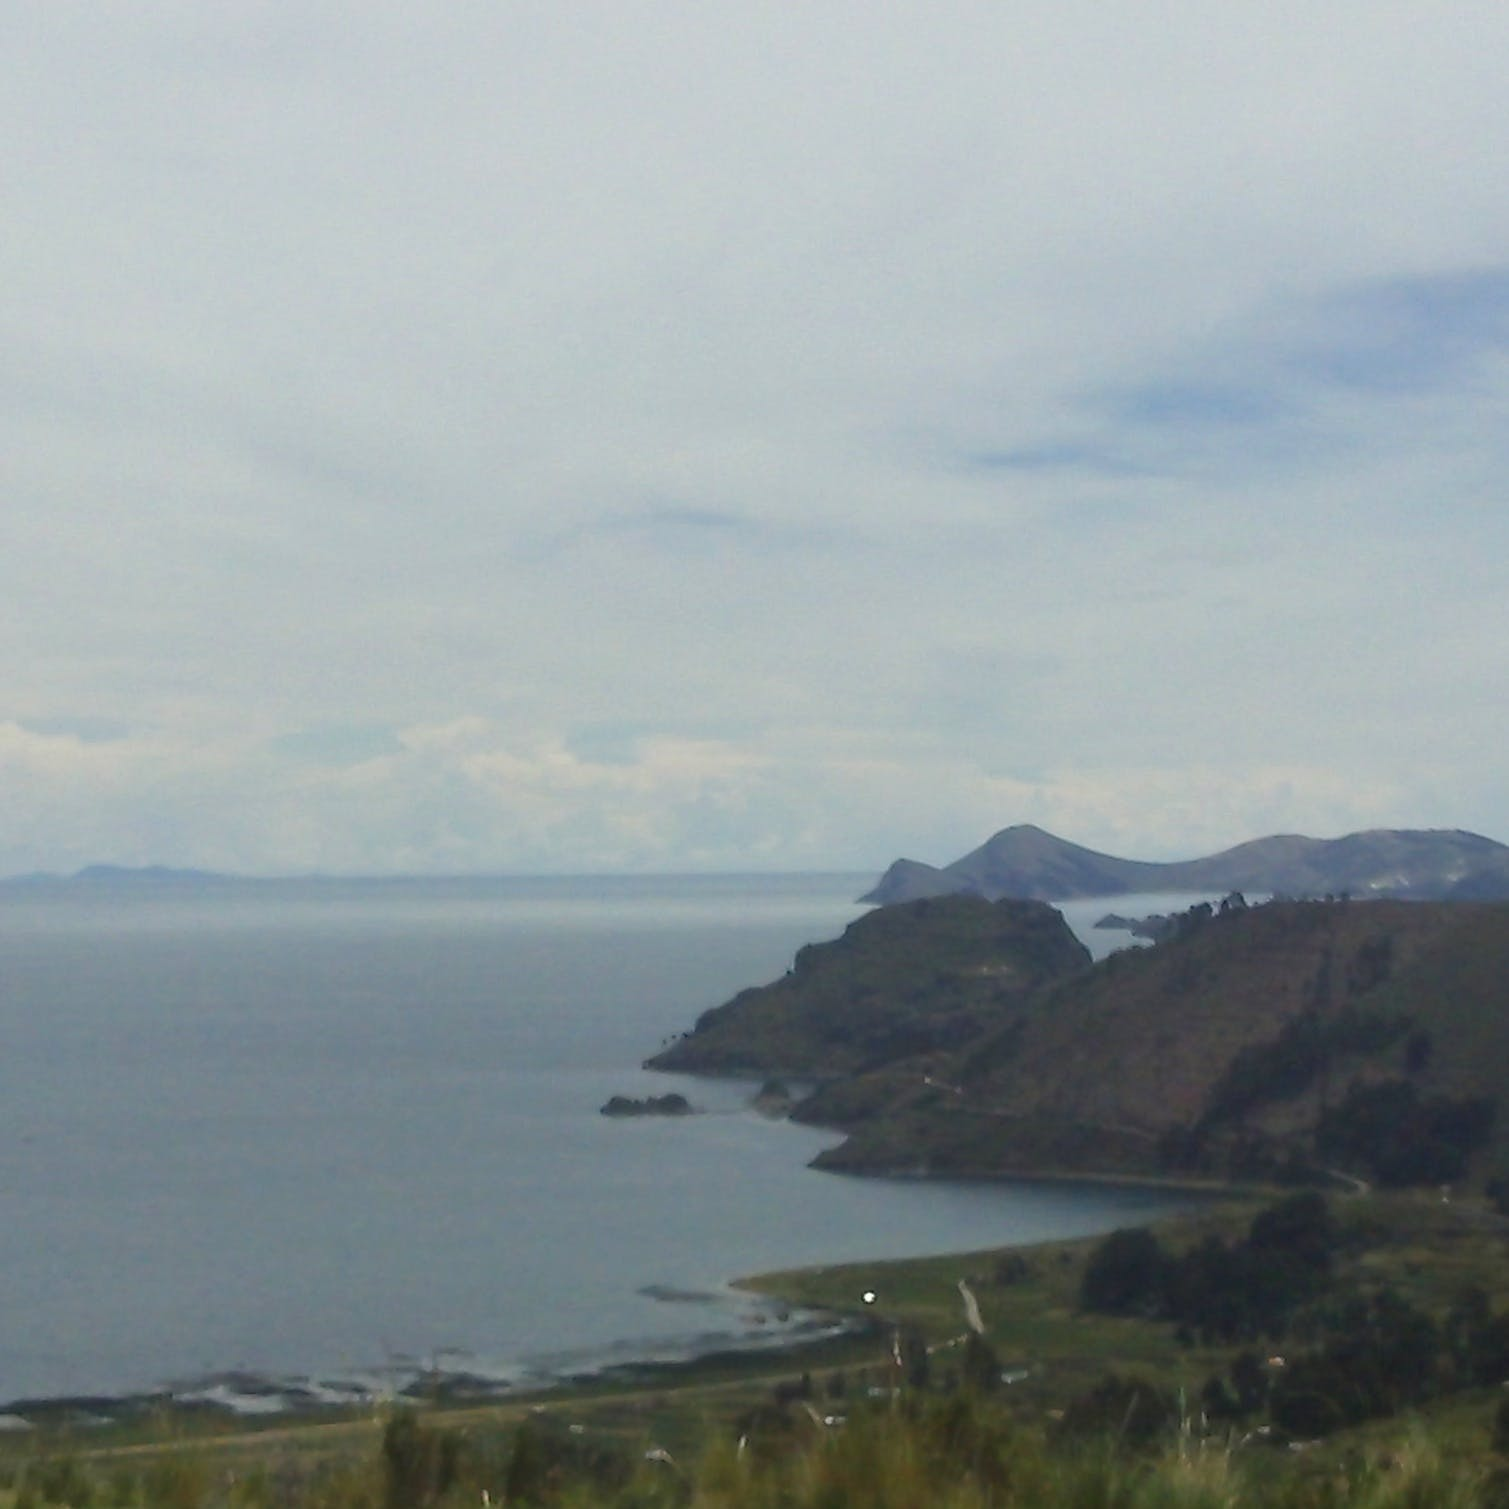 Free stock photo of #lago, #titicaca